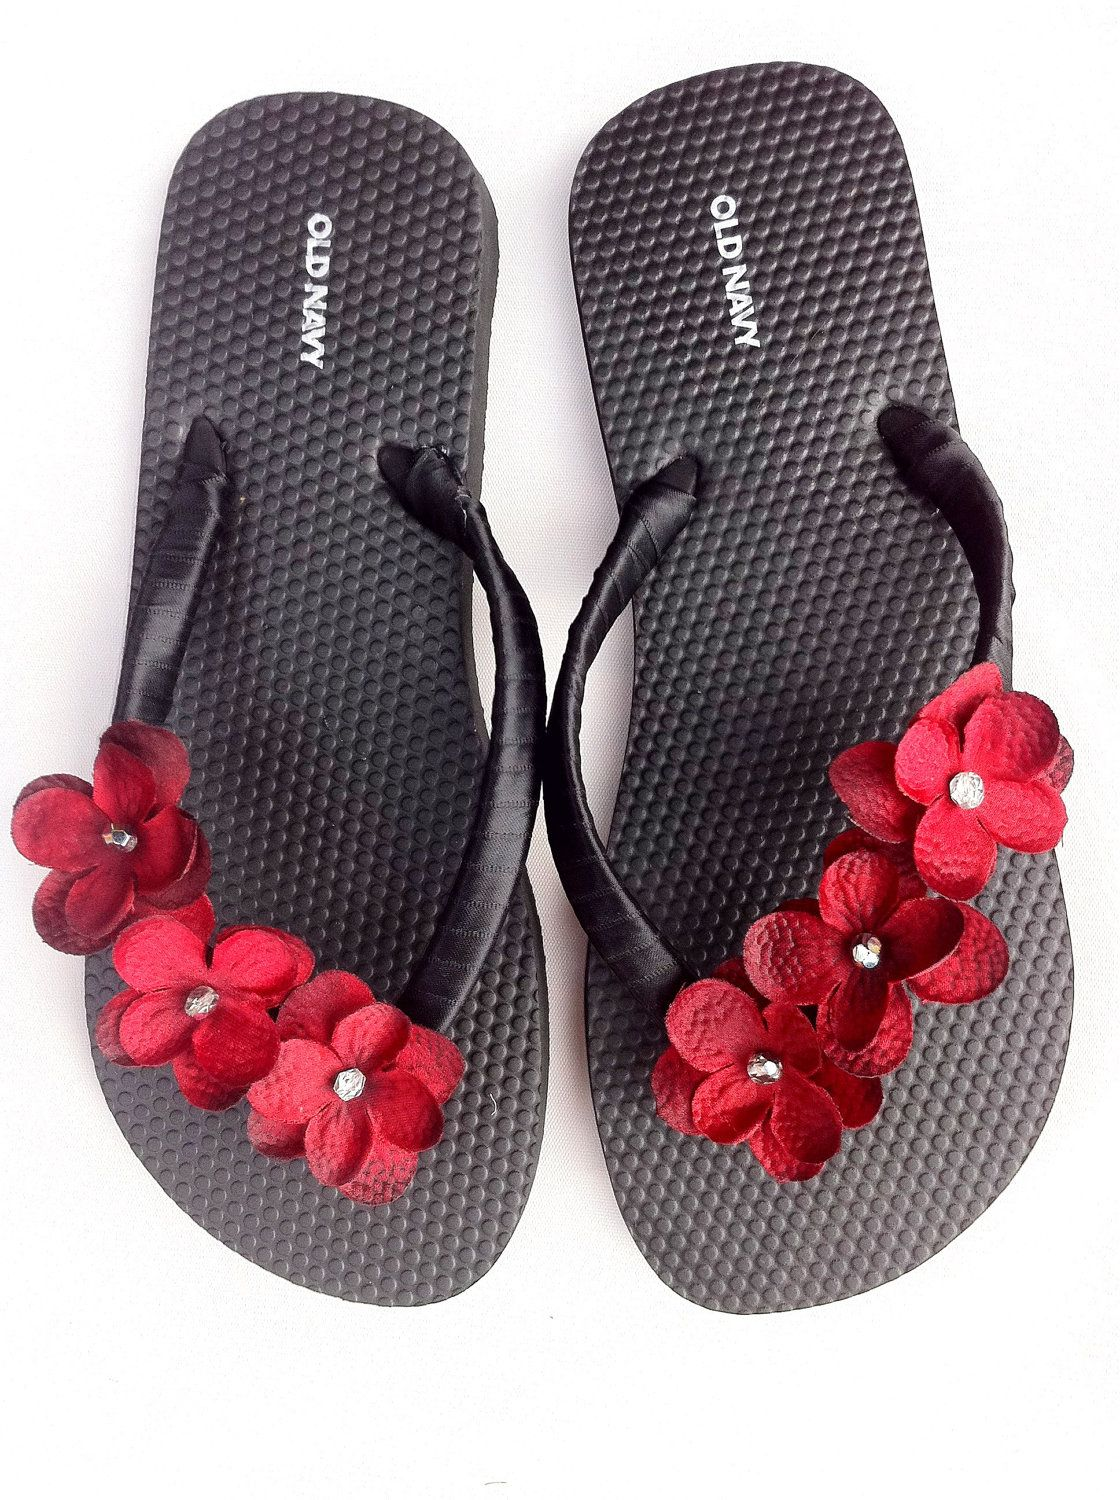 Flip Flops Hochzeit The Quotchristina Quot Black Flip Flop Sandal With Red Flowers